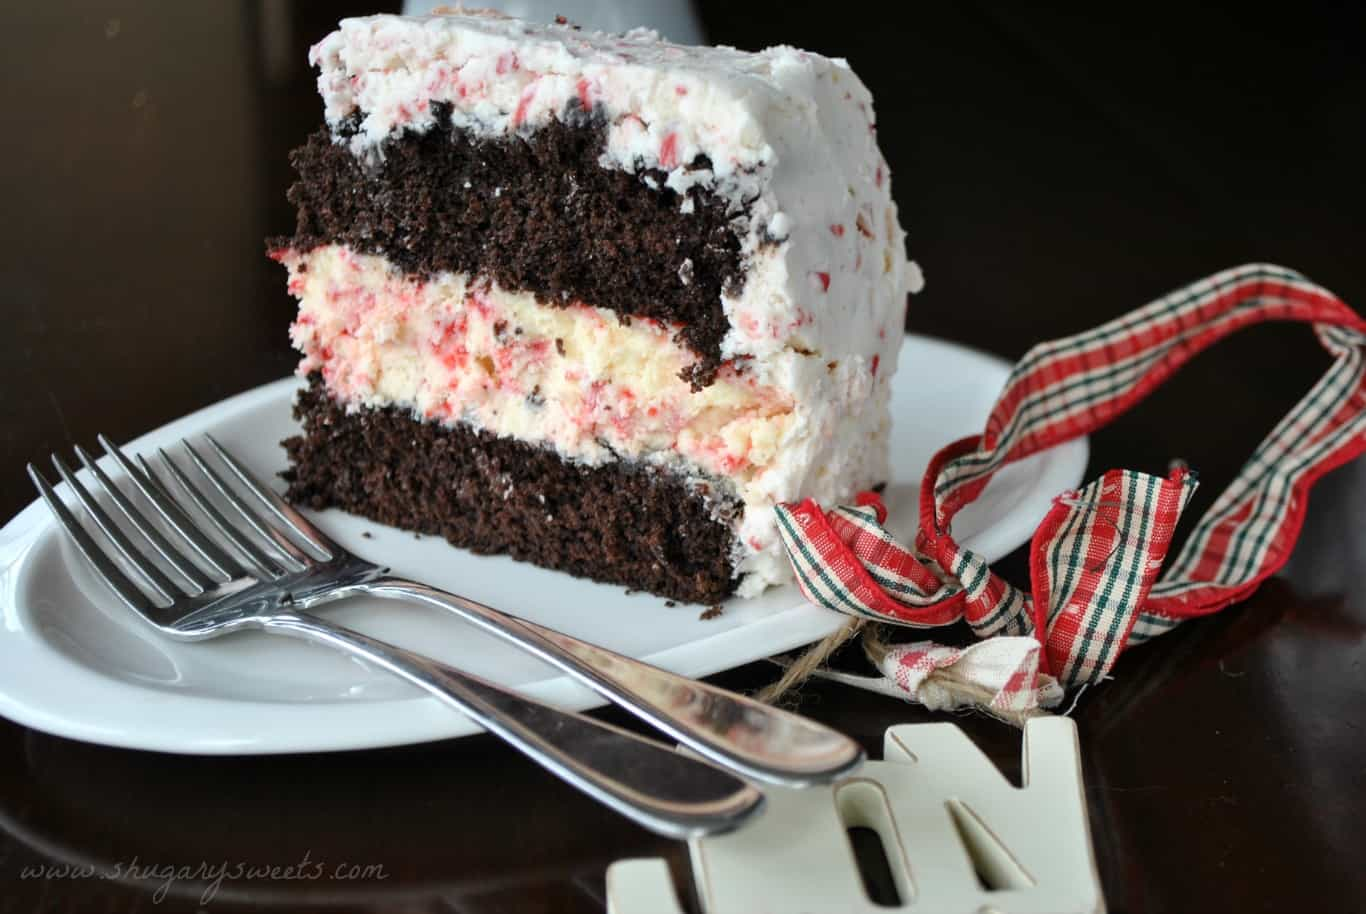 Slice of chocolate cake with peppermint cheesecake and frosting.